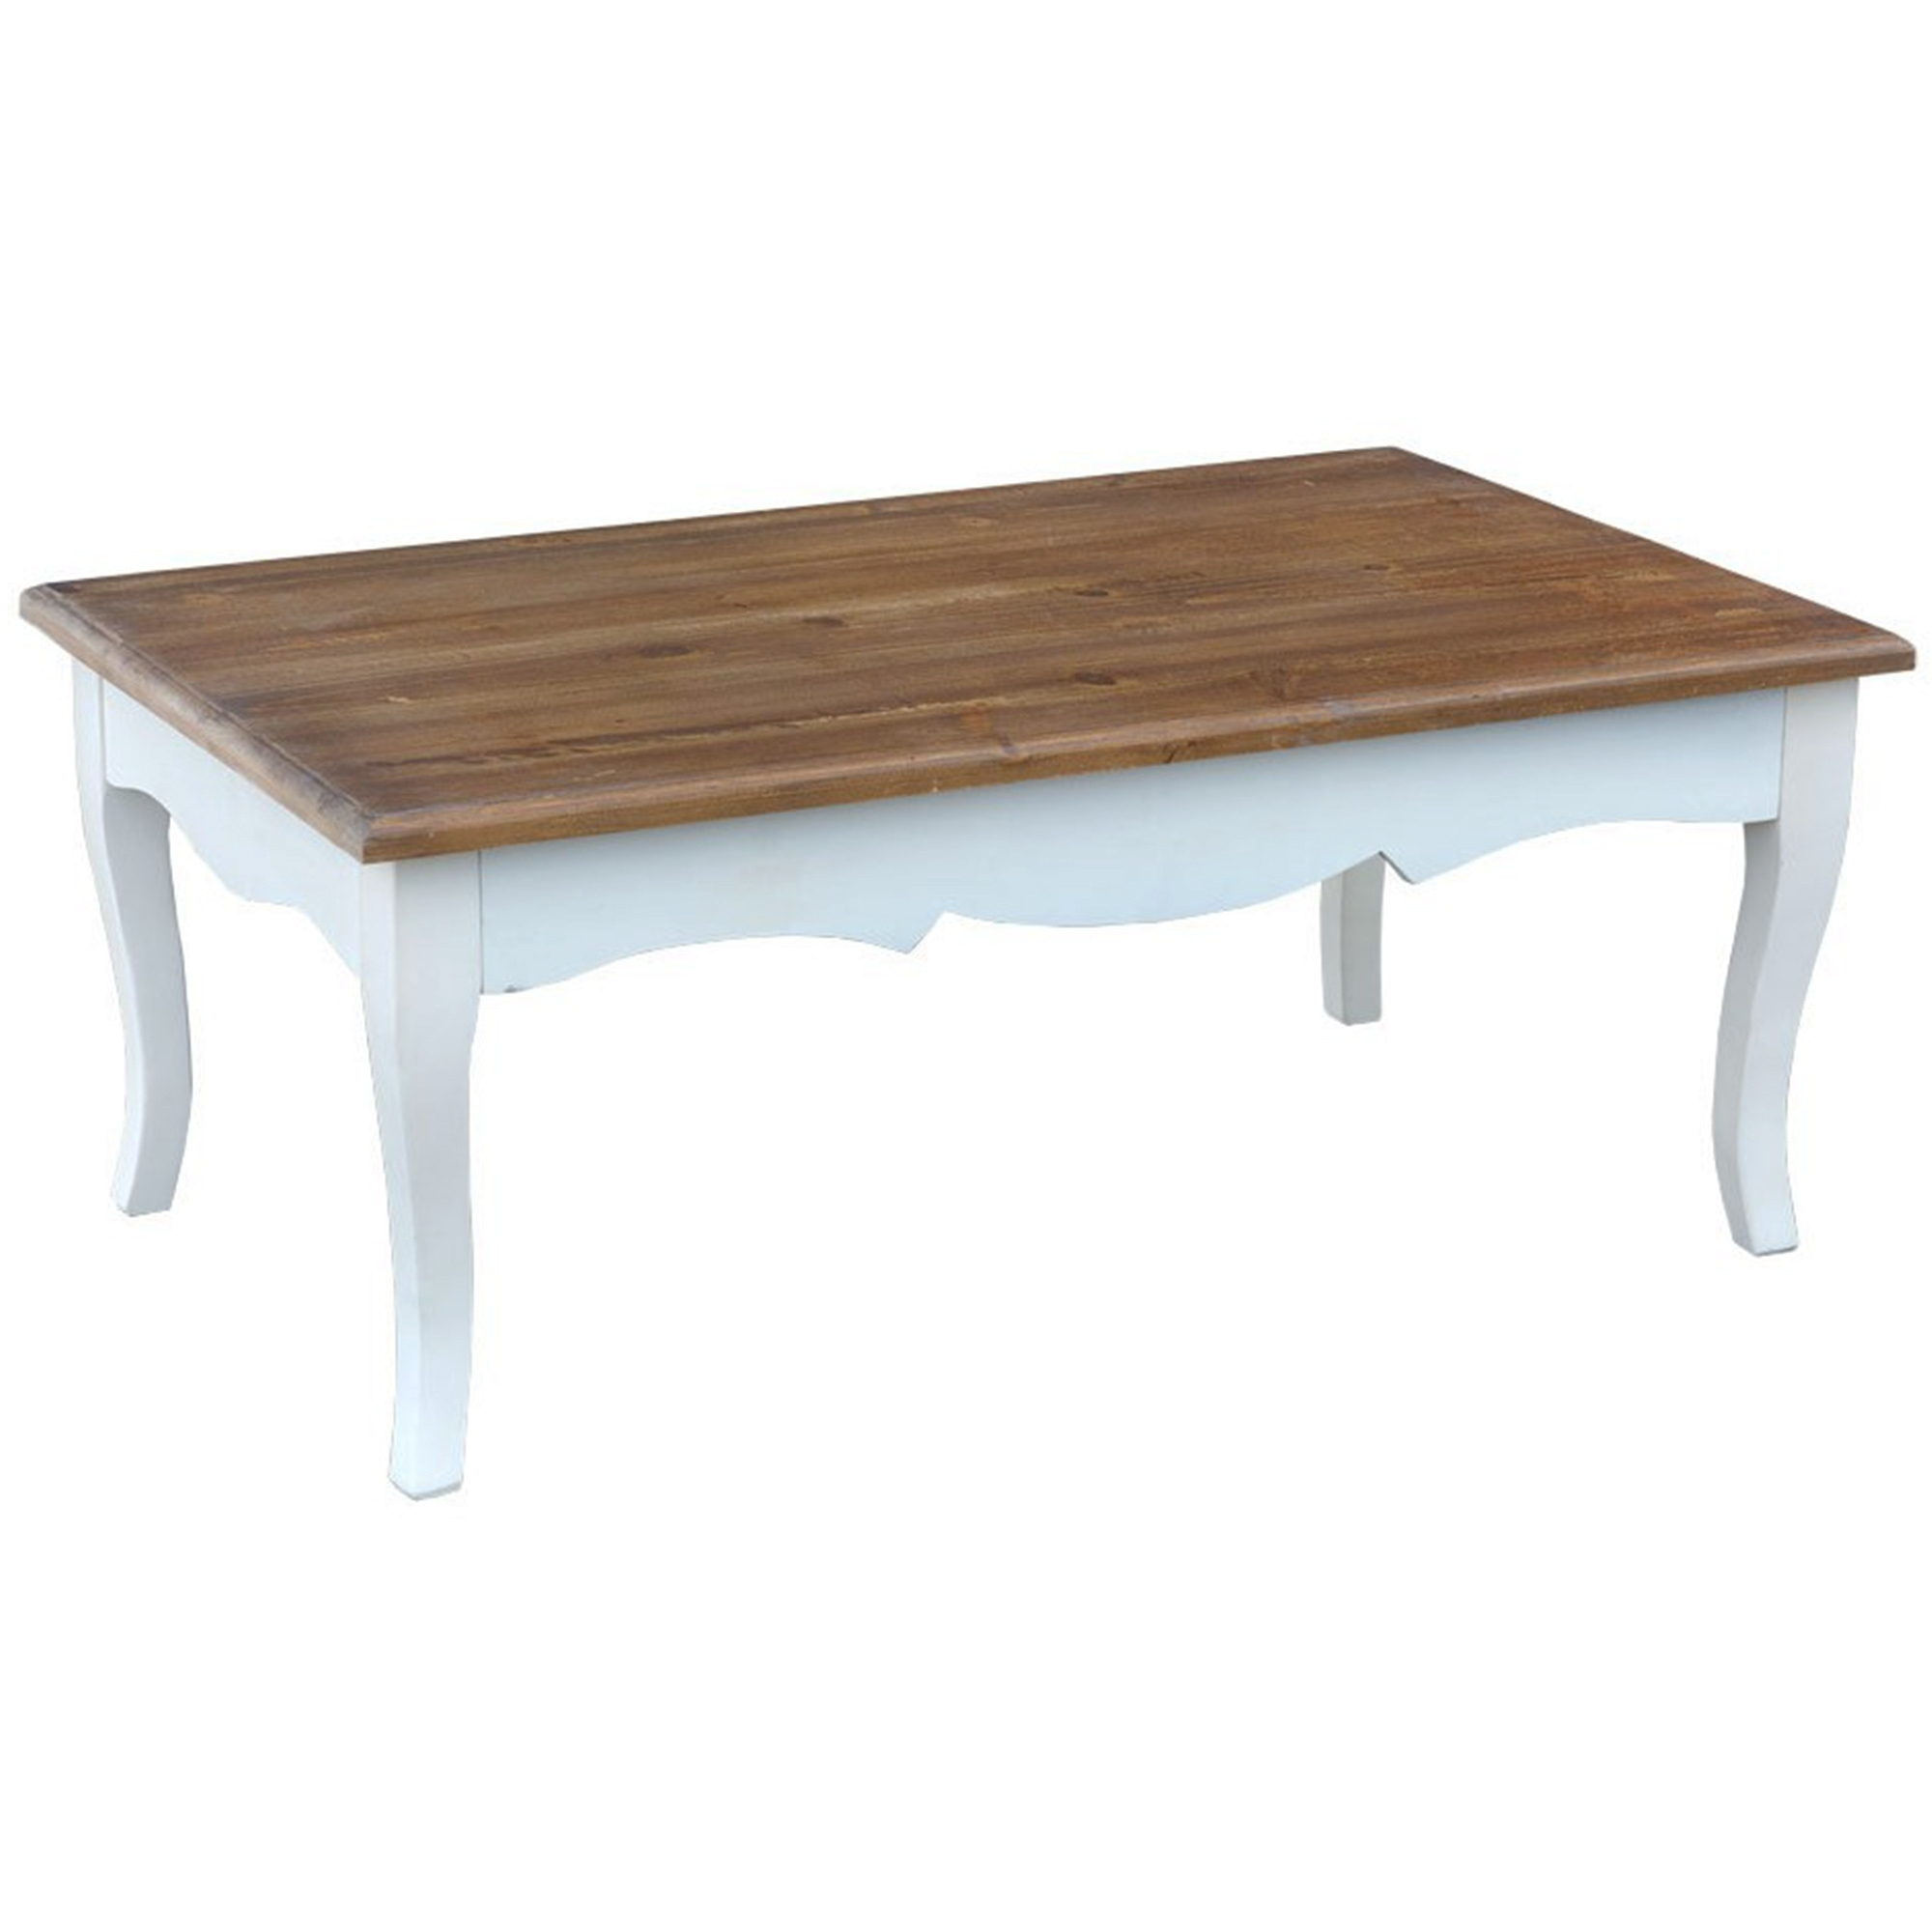 Shabby Chic Corner Coffee Table: Transylvania Shabby Chic Coffee Table